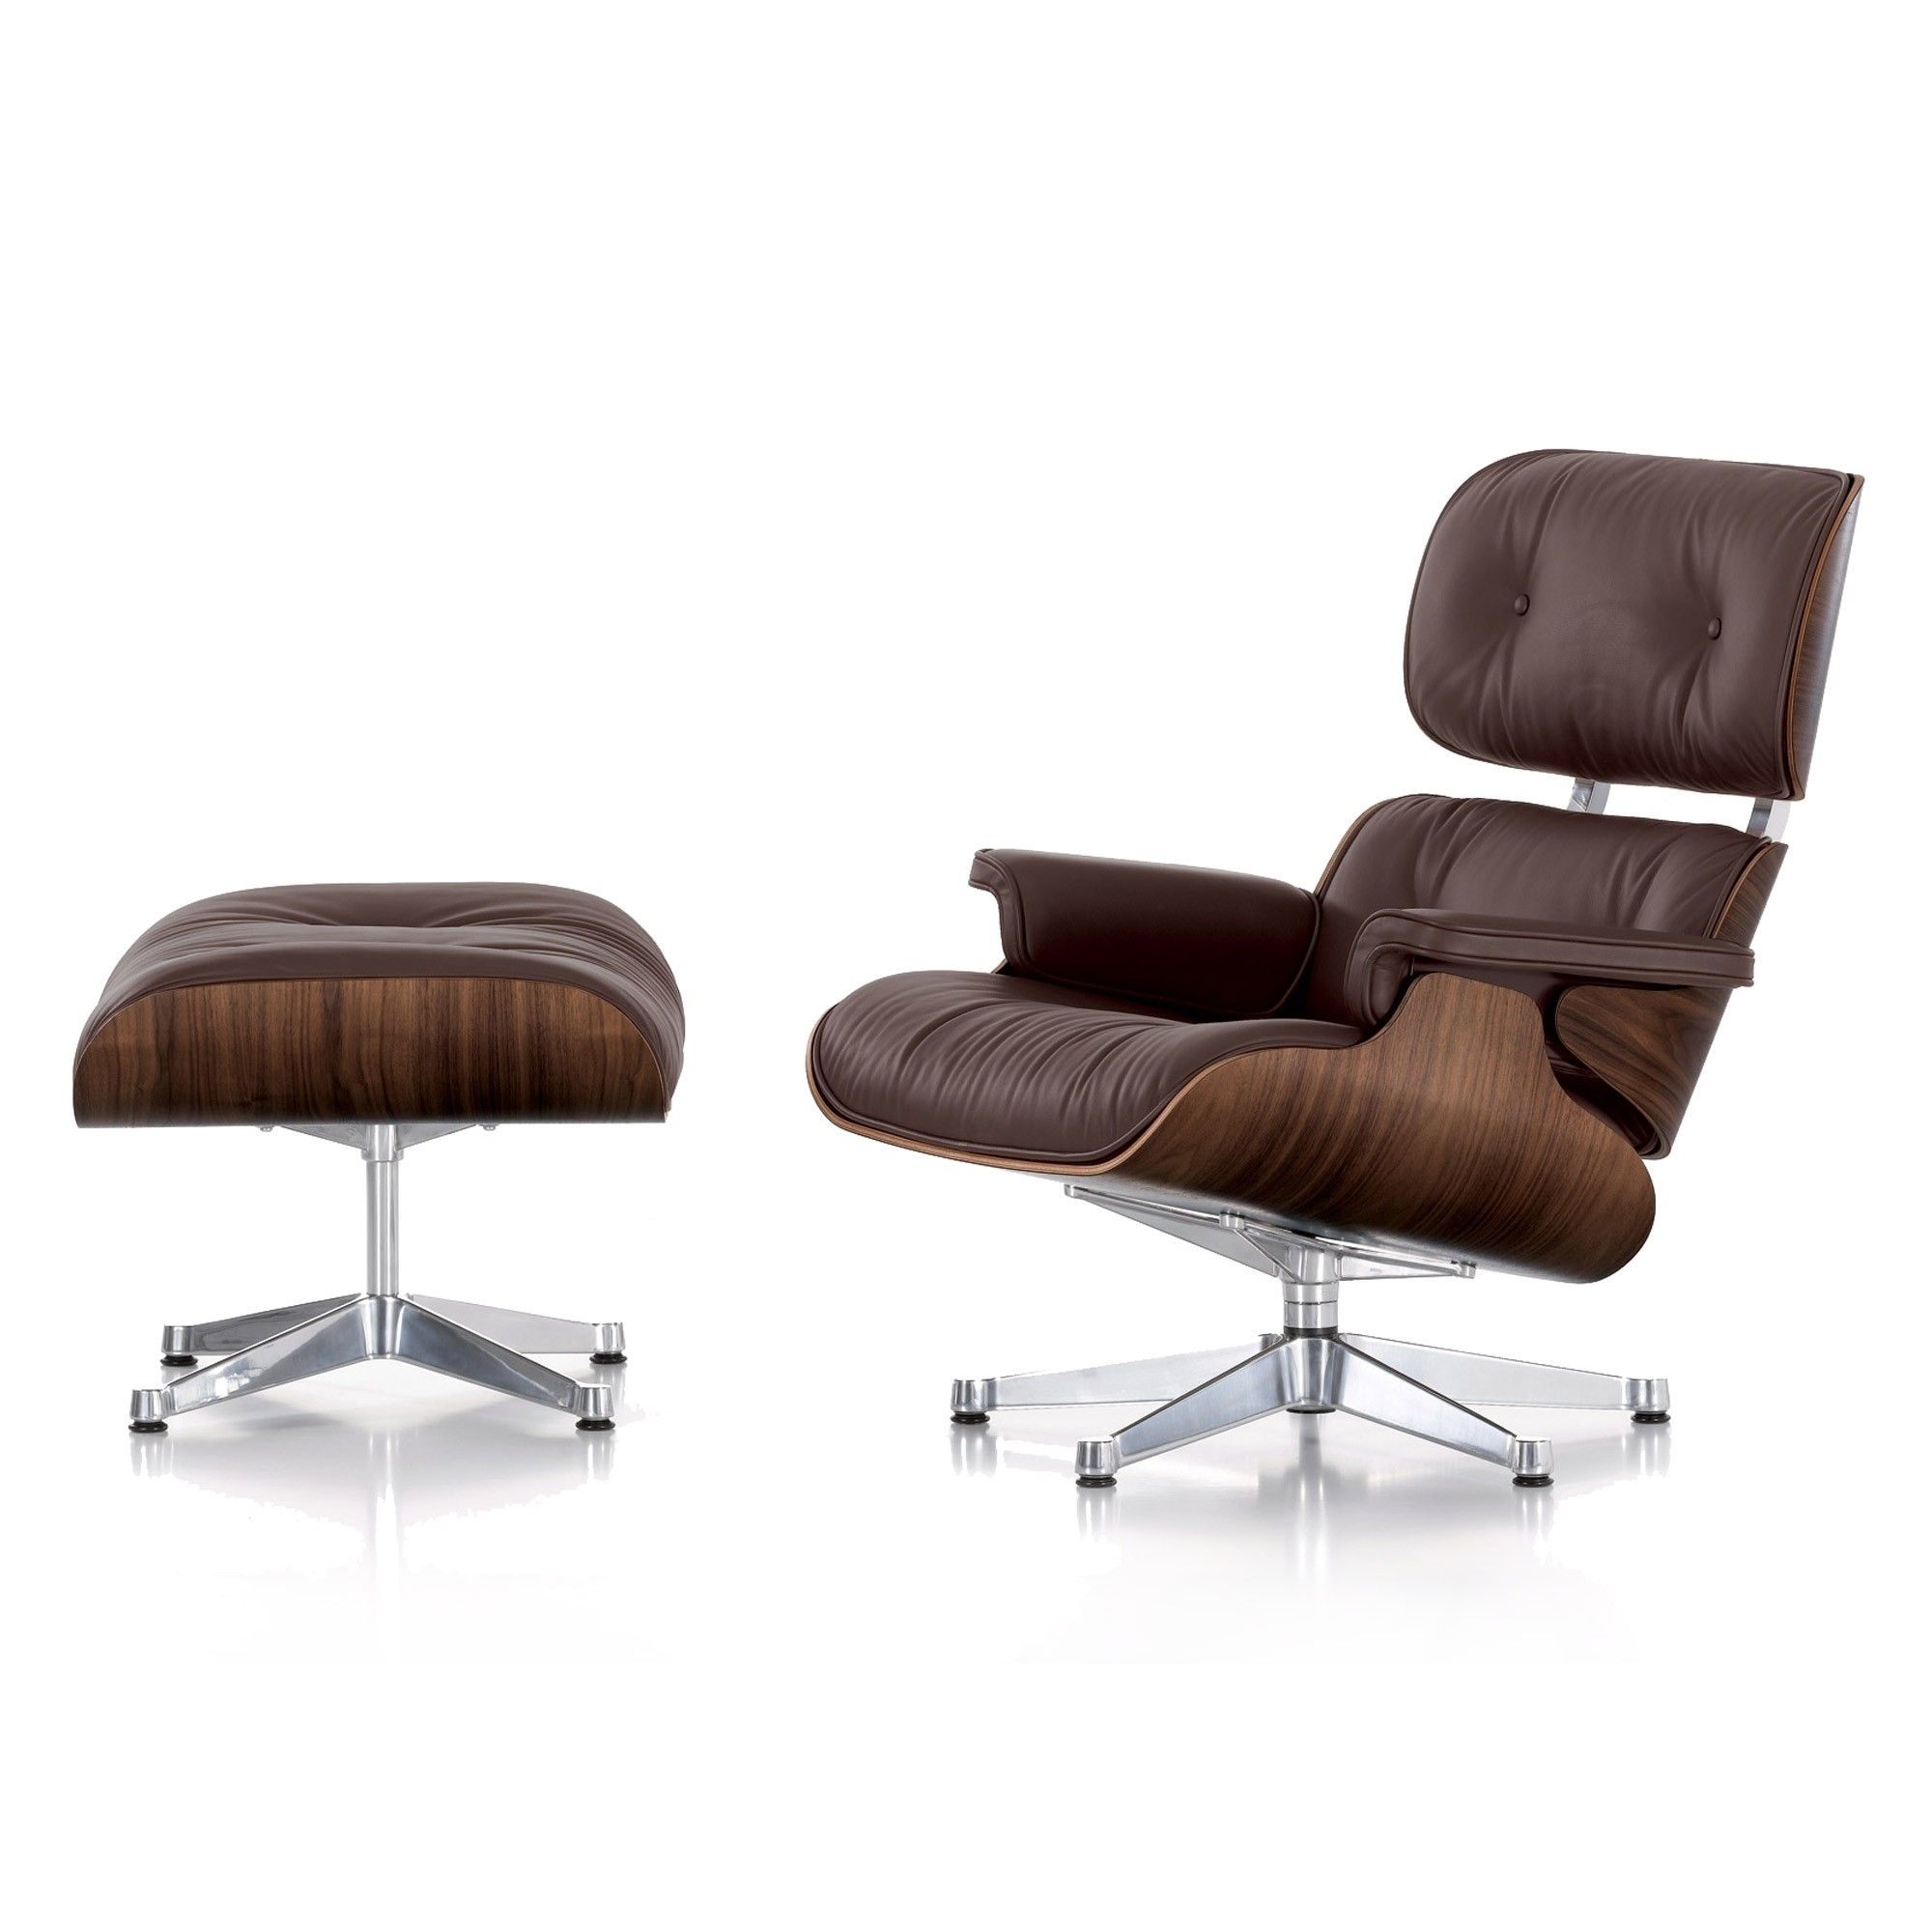 Chaise Lounge Chairs With Ottoman For Best And Newest Lounge Chair : Ottoman For Sale Eames Lounge Chair Ottoman Replica (View 2 of 15)